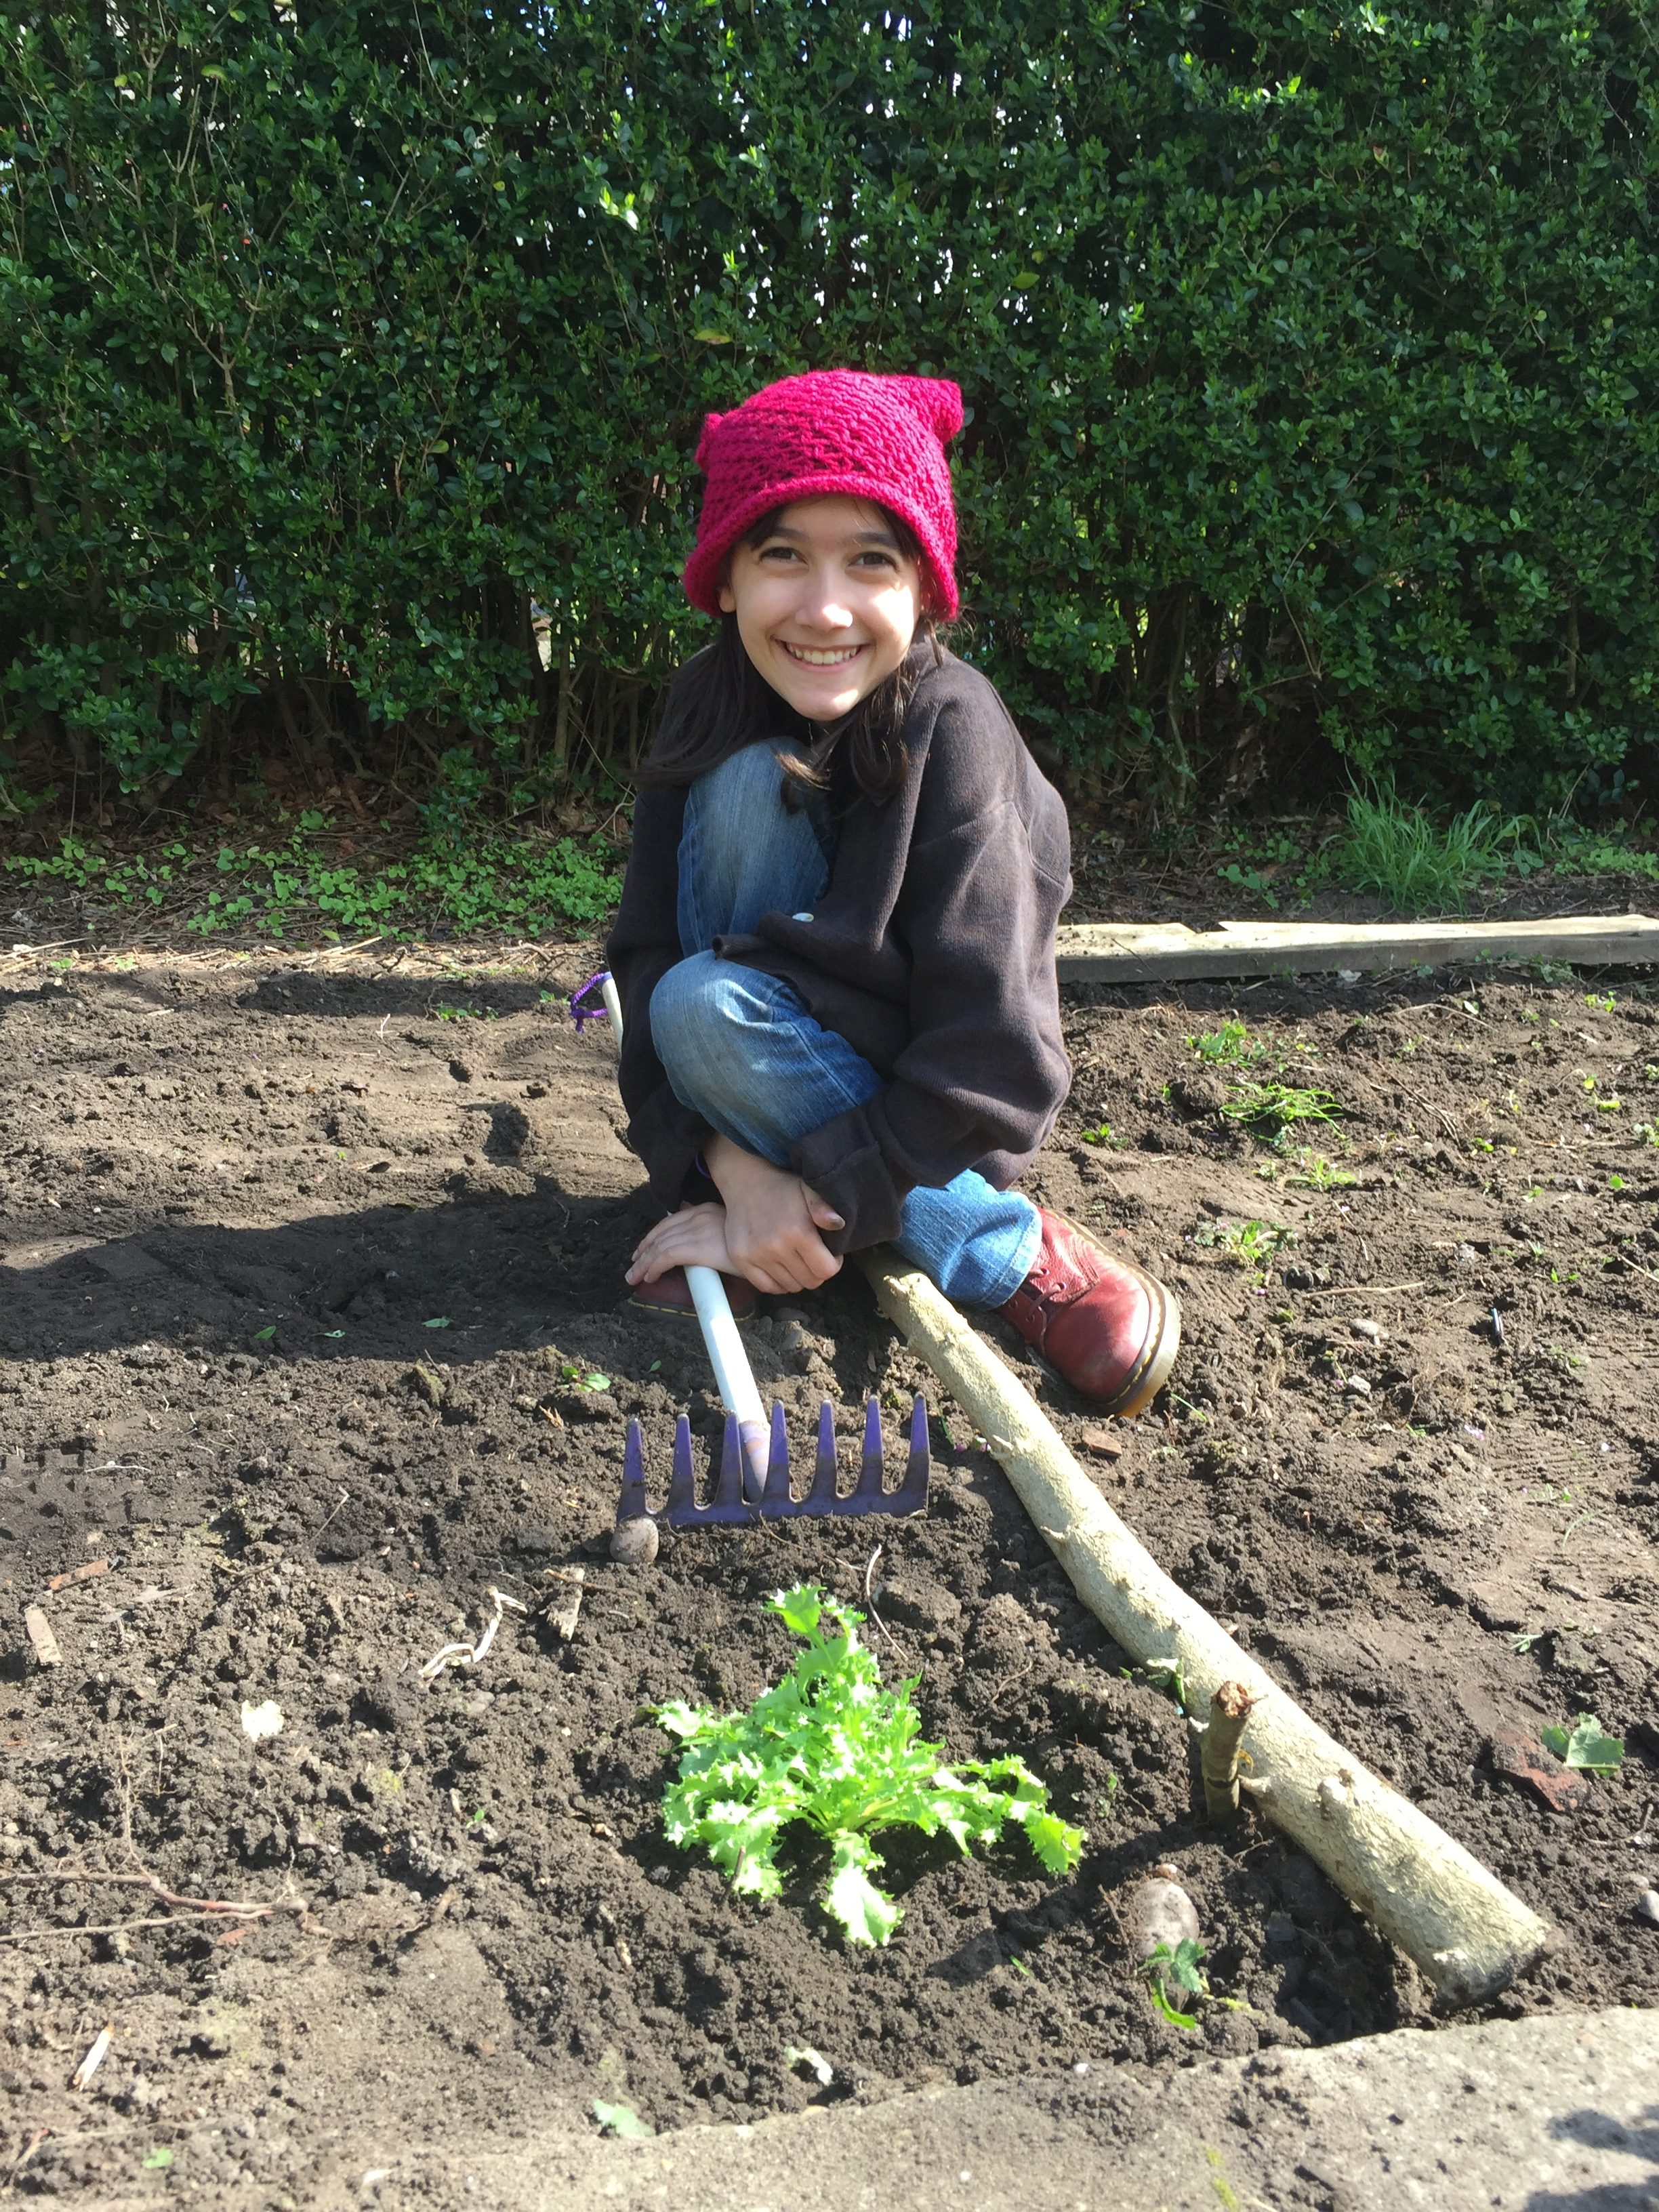 Transplanting our greens to her garden.